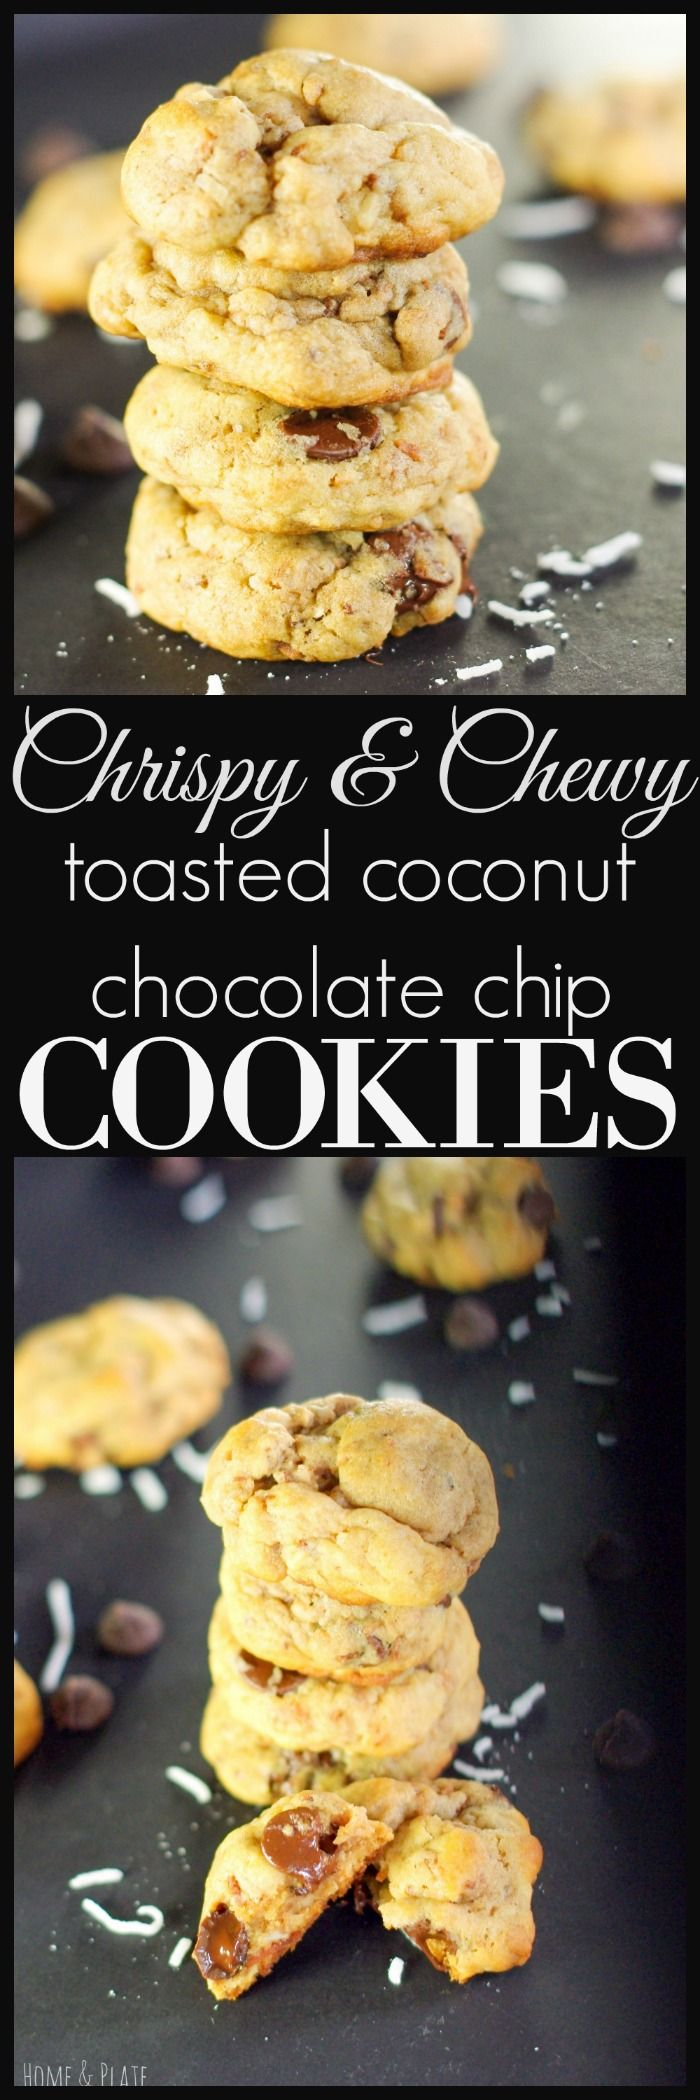 Crispy & Chewy Toasted Coconut Chocolate Chip Cookies | Home & Plate | www.homeandplate.com | Turn a traditional chocolate chip cookie into something amazing by adding in toasted coconut.